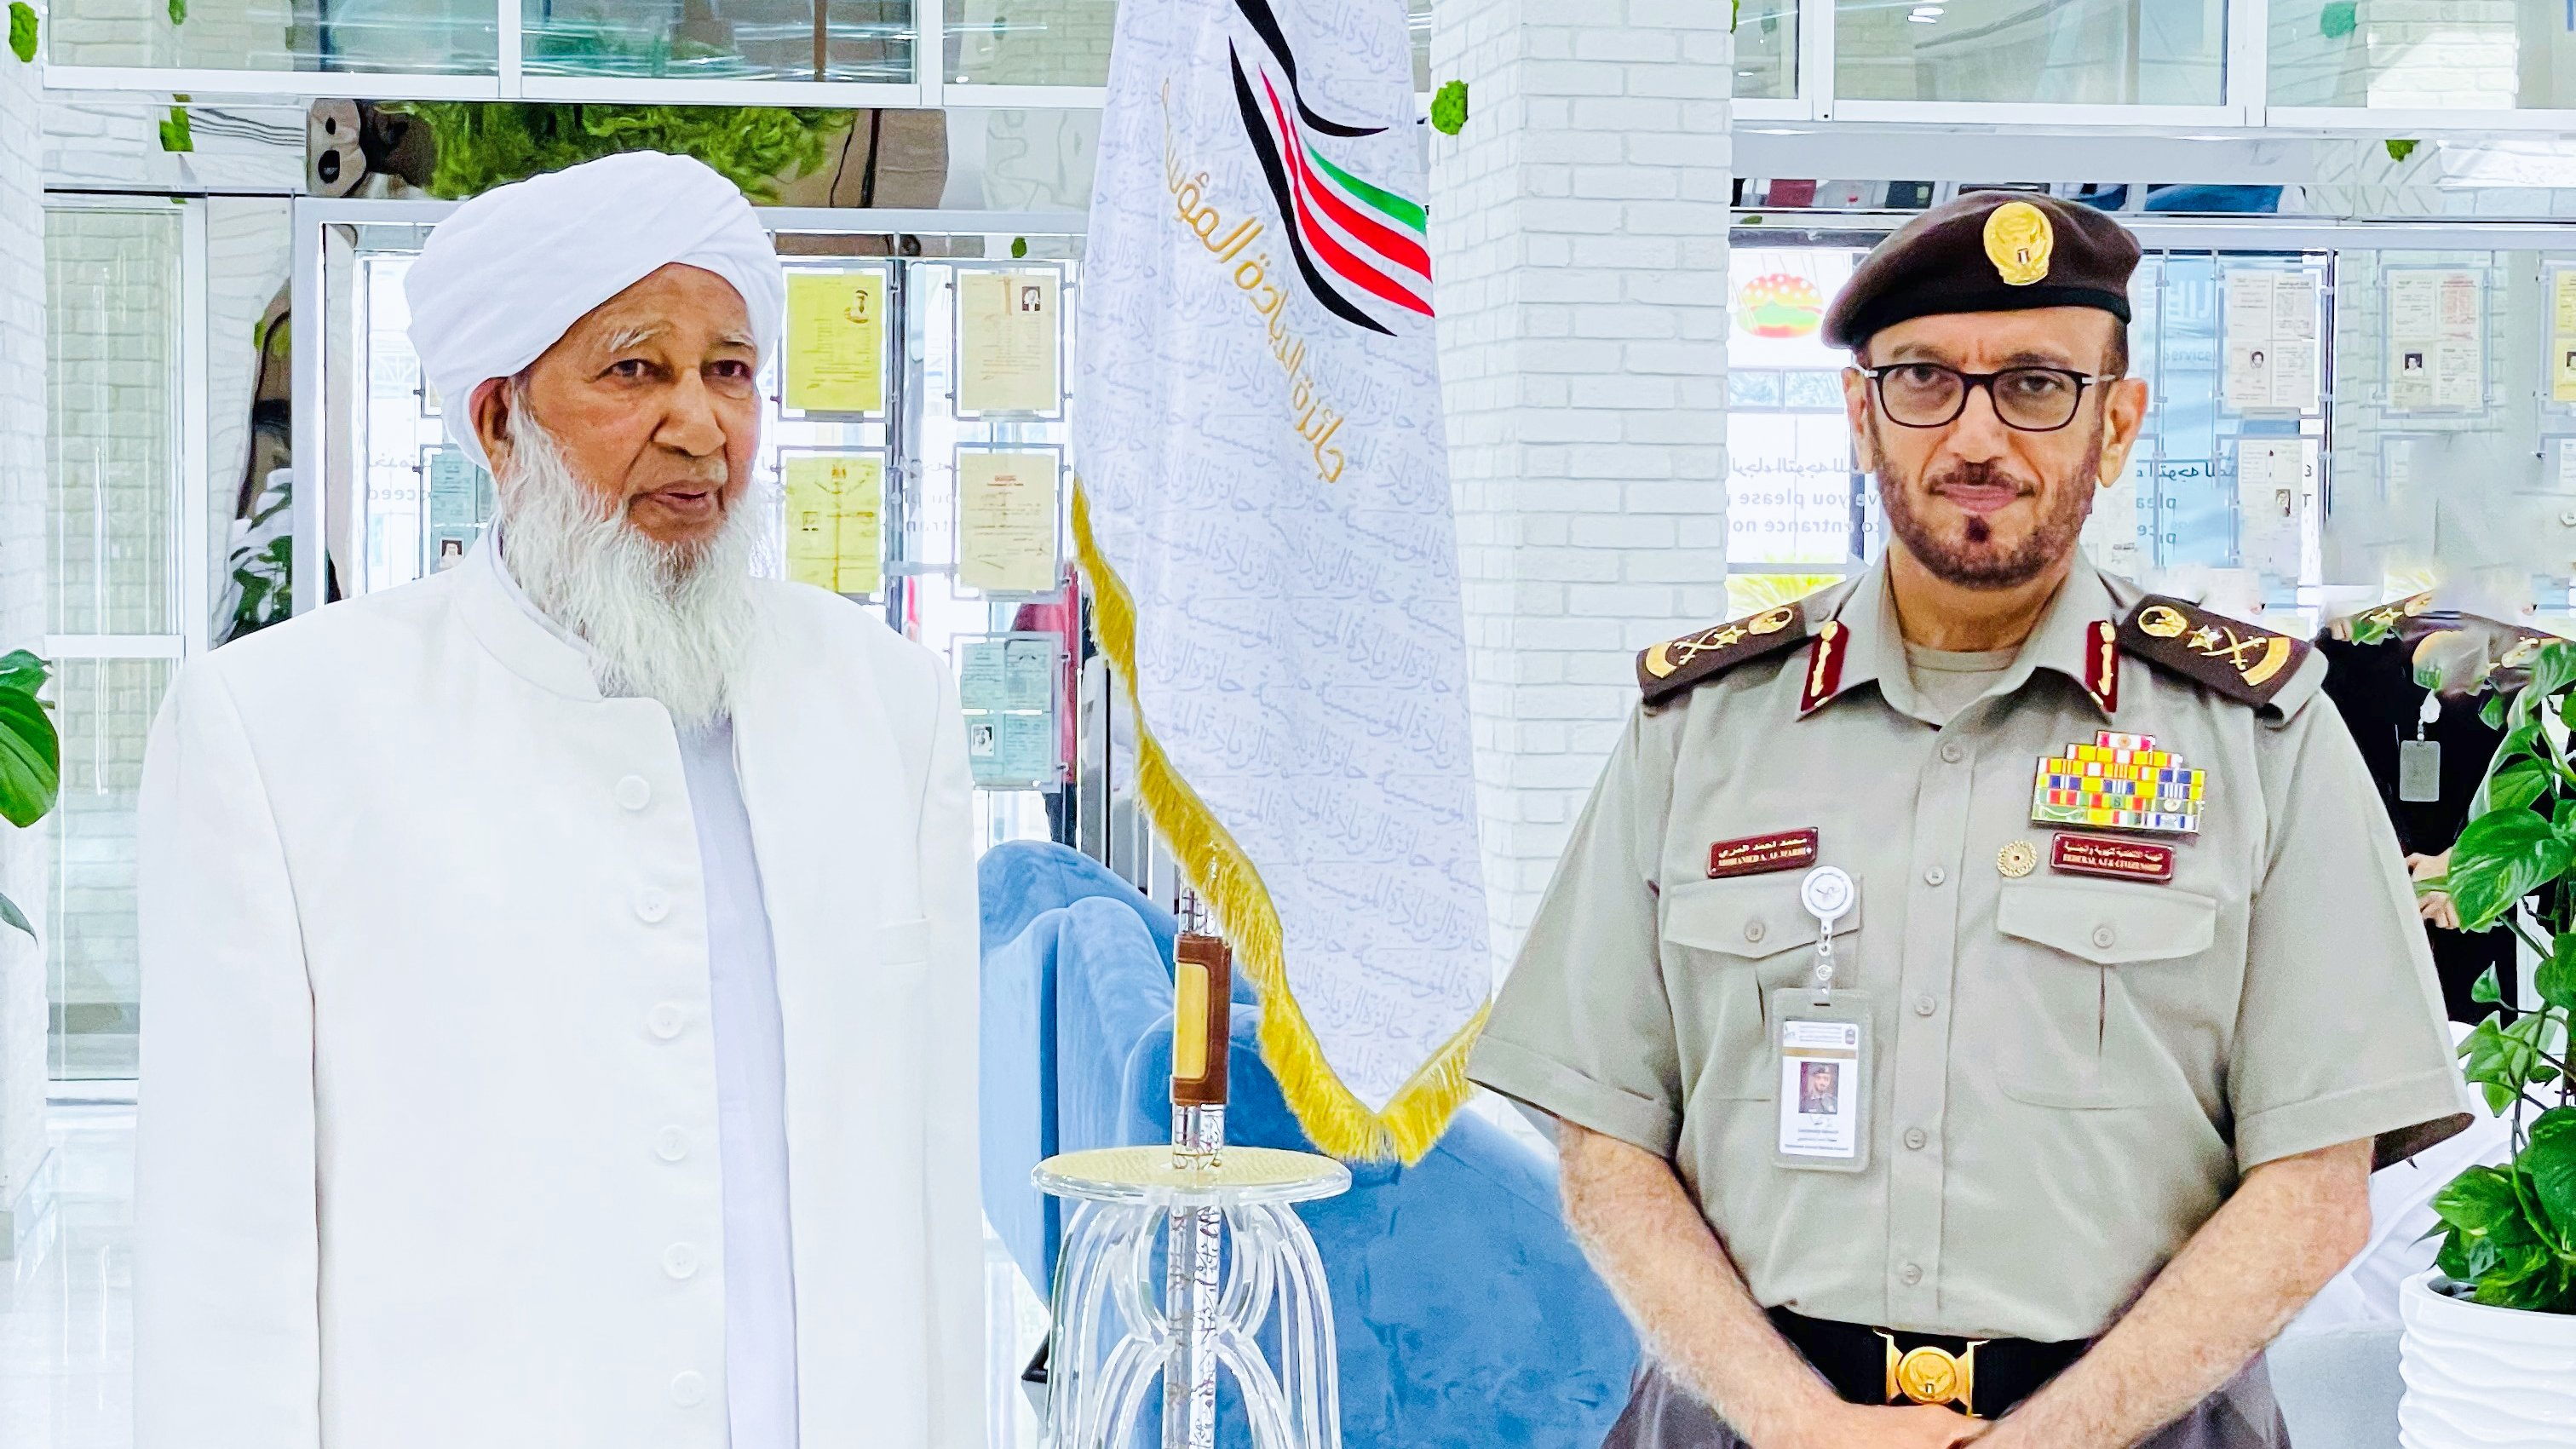 The religious leader, who is popularly known as Kanthapuram AP Aboobacker Musliar, has been a regular face at platforms promoting peace and interfaith dialogue.